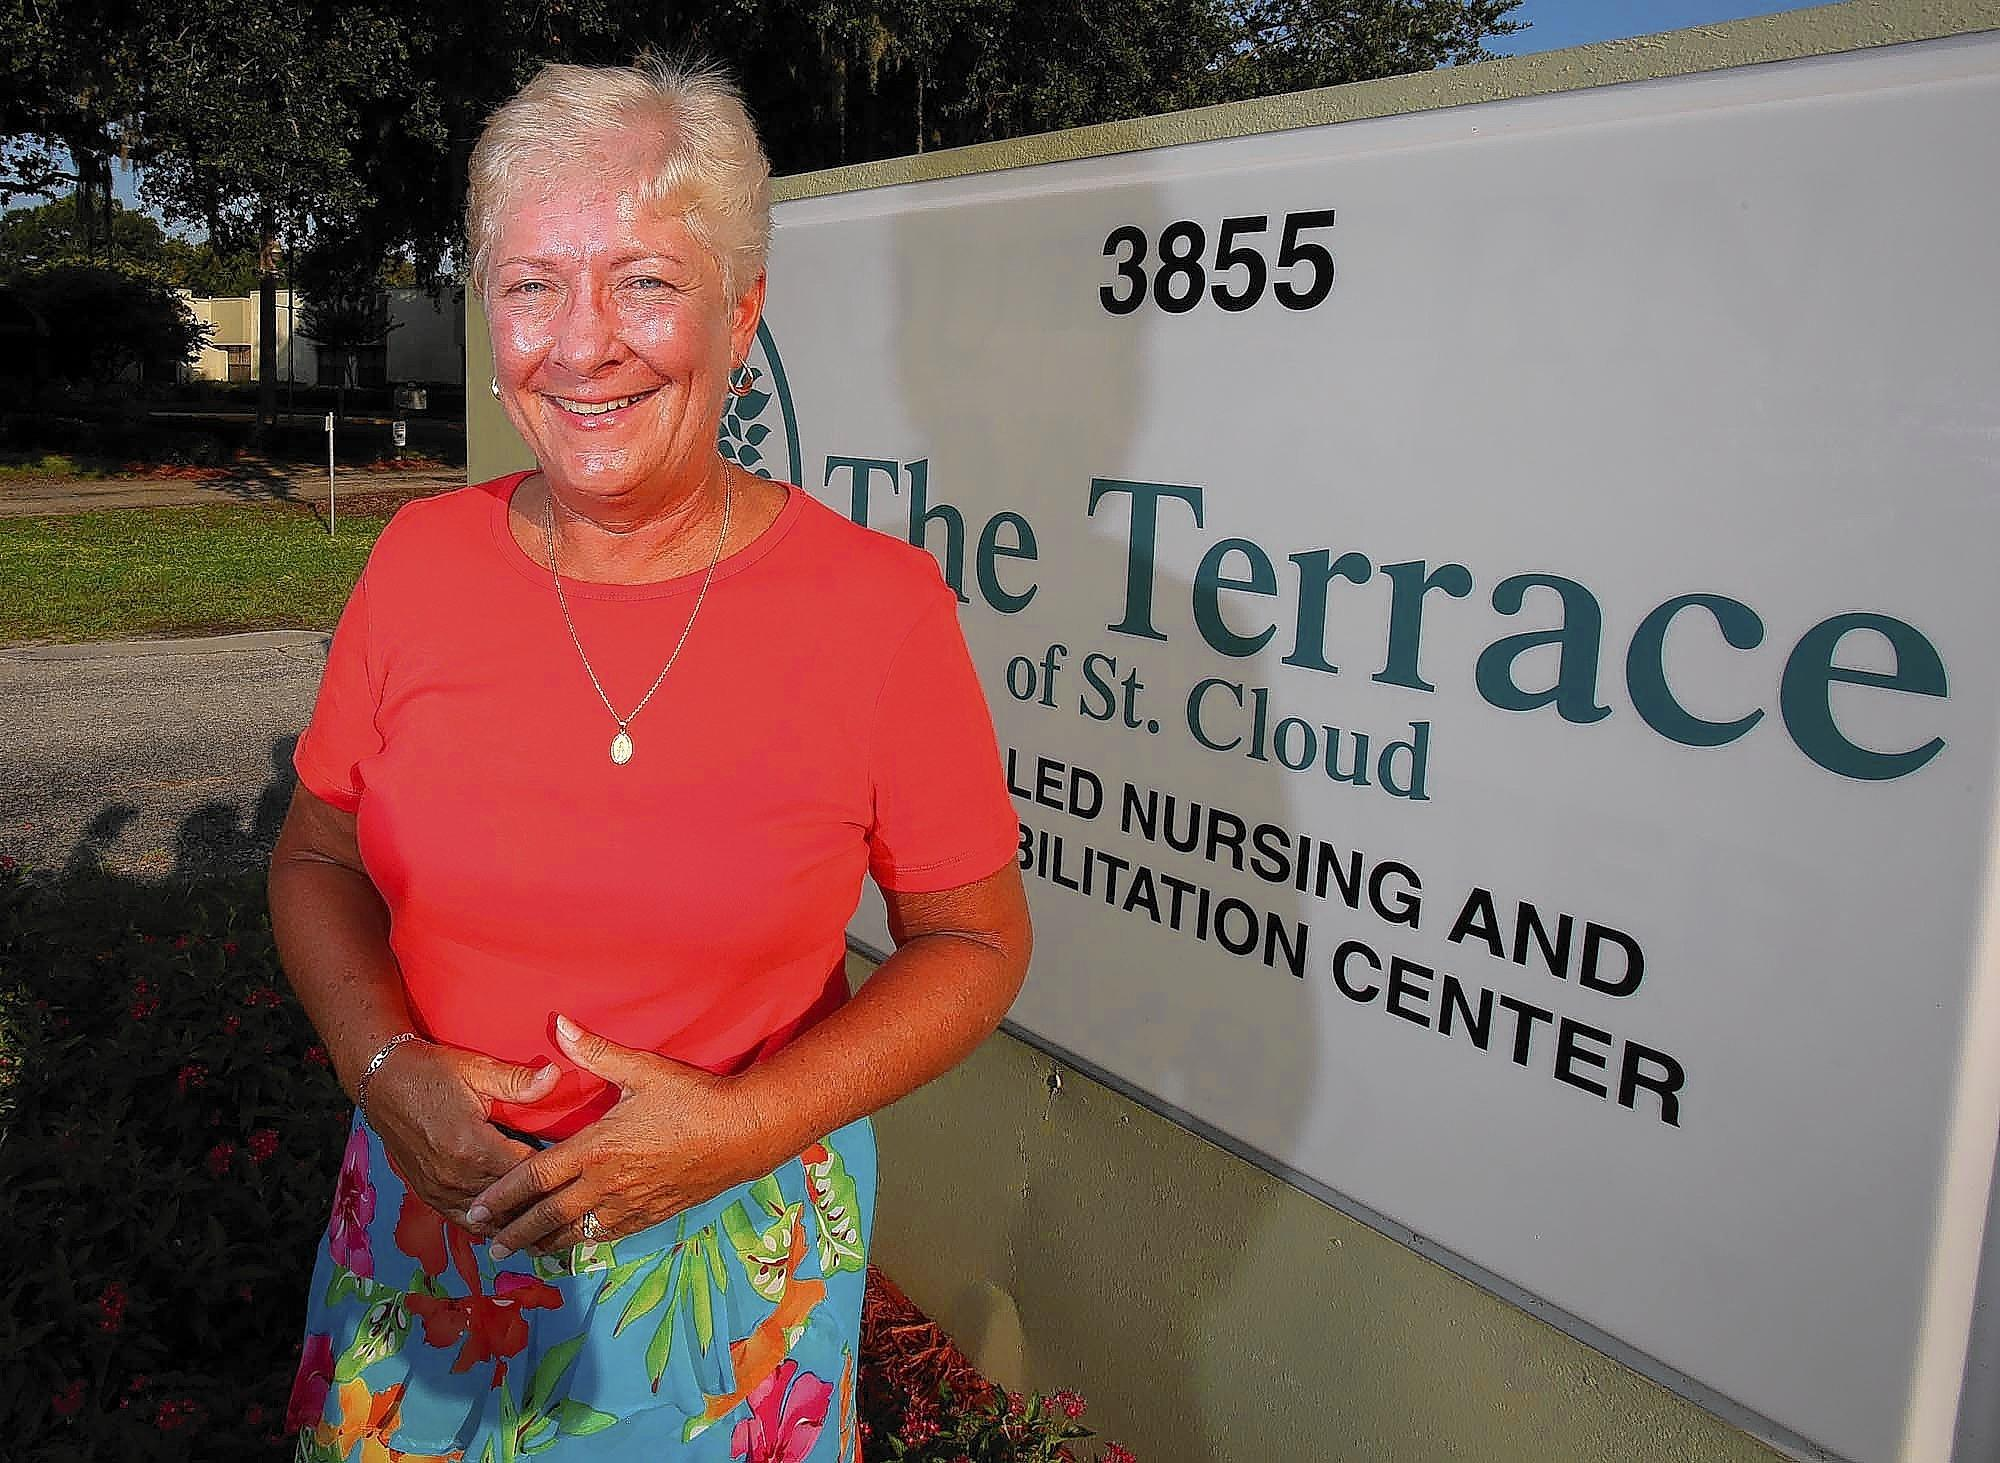 Alicia Knothe moved her mother to The Terrace of St. Cloud assisted living facility in St. Cloud, Fla., after having a bad experience with her mother's care at a facility in Maryland in 2012. A new owner took over the Maryland facility a few months later.